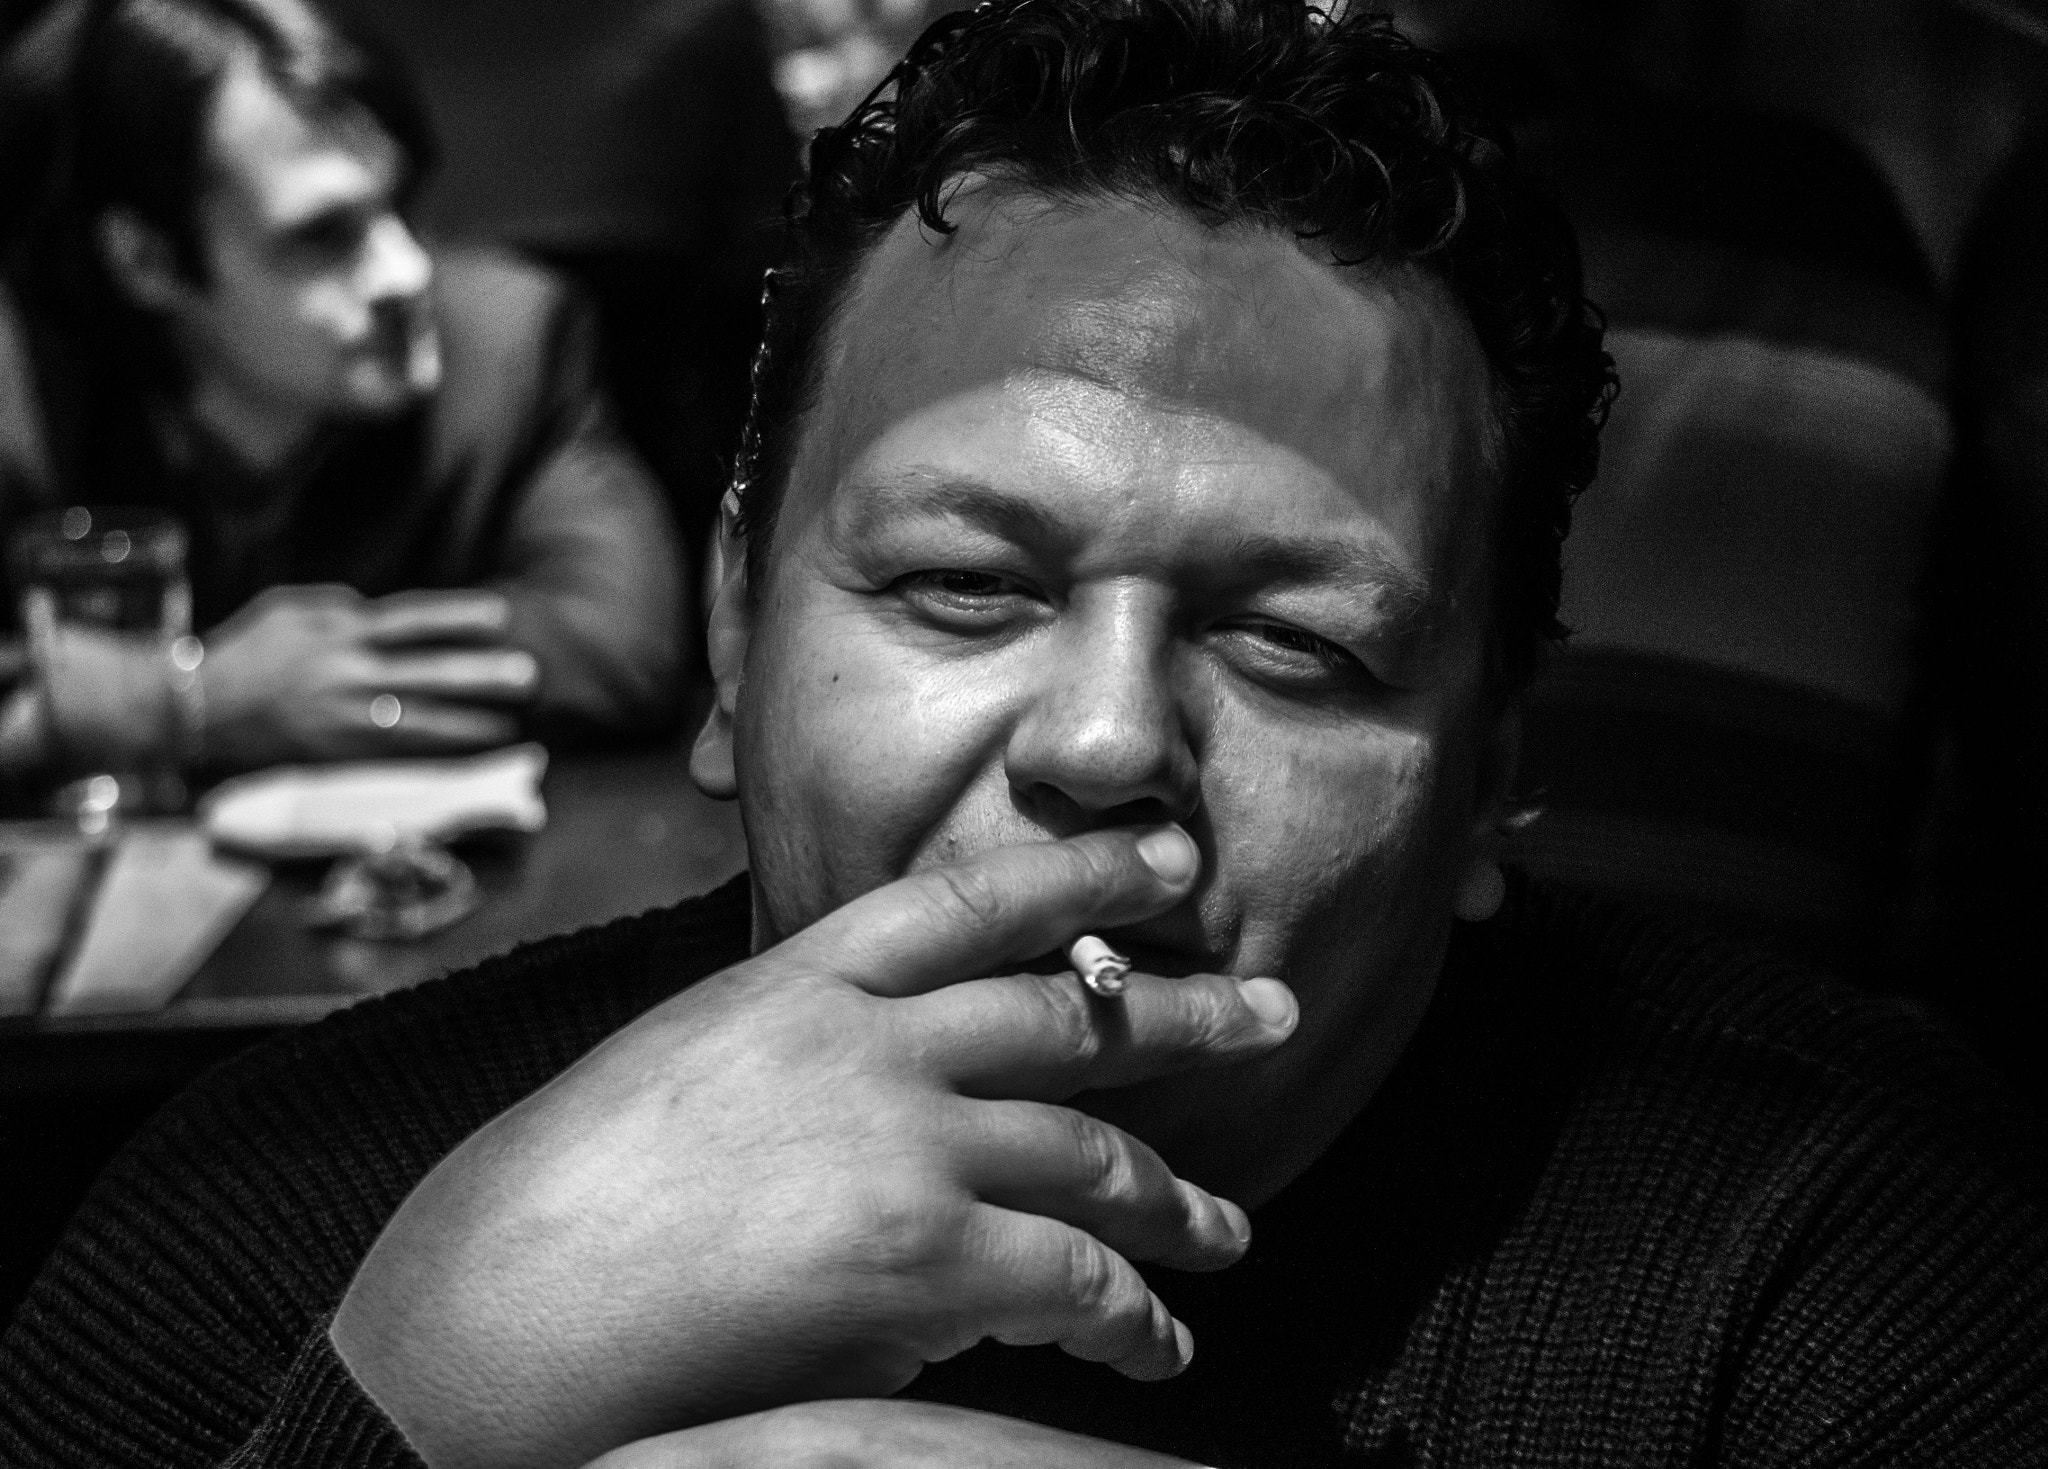 Photograph Smoker by Michel Vershinin on 500px